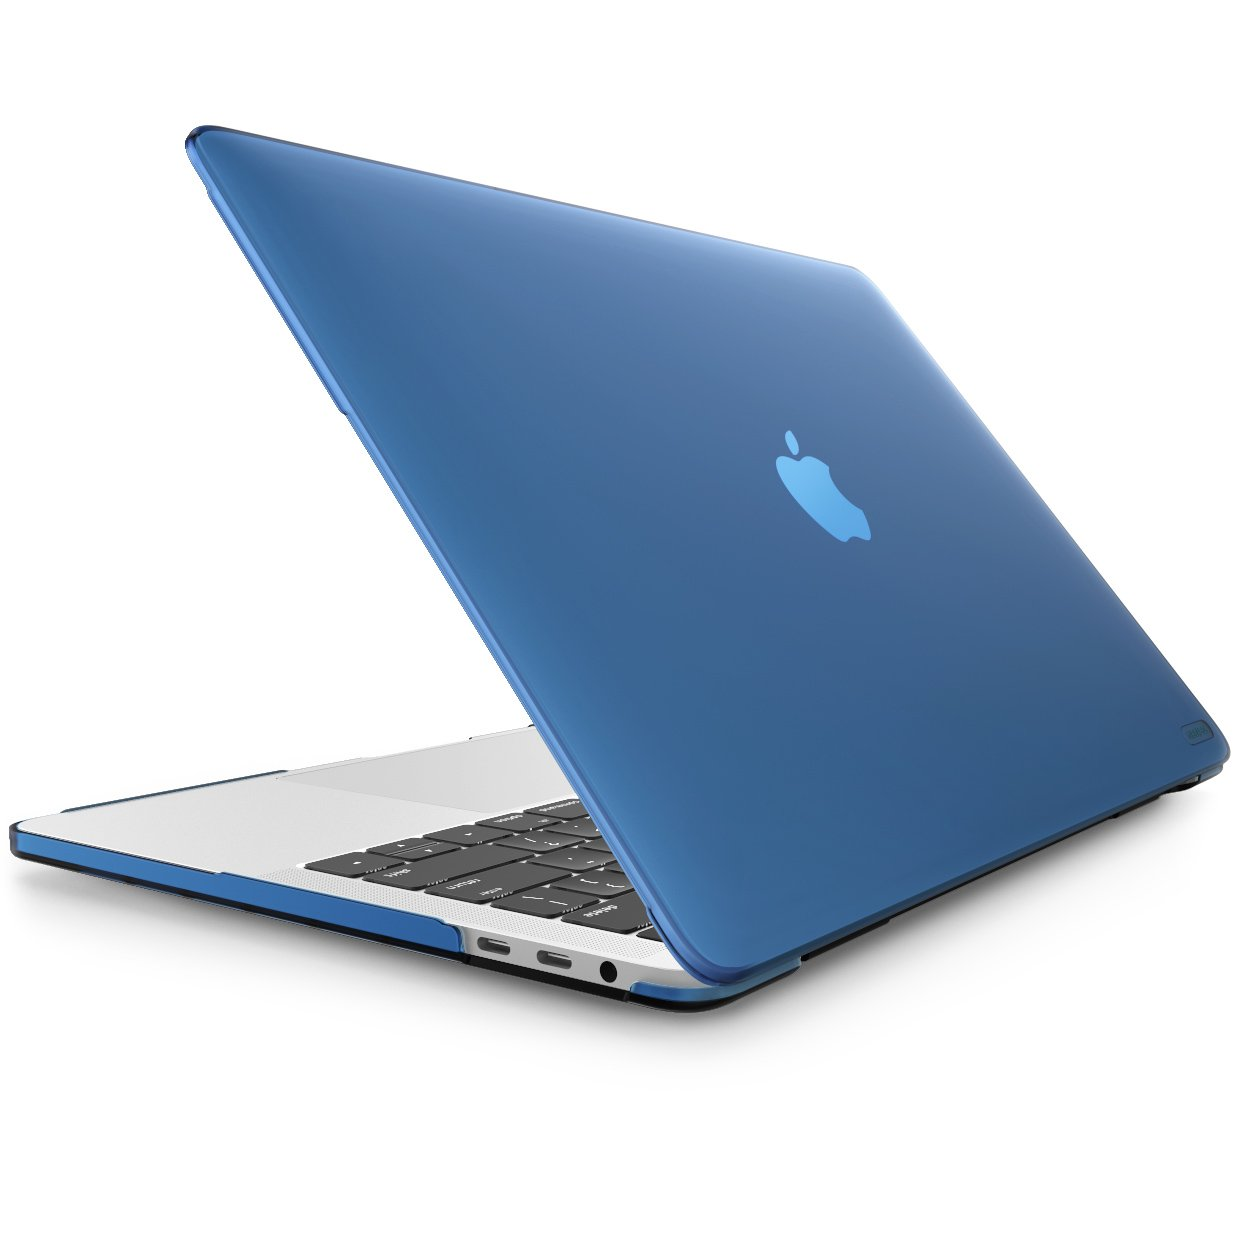 MacBook Pro 15 Case 2018 2017 2016 Release A1990/A1707, i-Blason [Heavy Duty] Slim Rubberized [Dual Layer] Cover with TPU Bumper for Apple MacBook Pro 15 inch with Touch Bar and Touch ID (Blue)